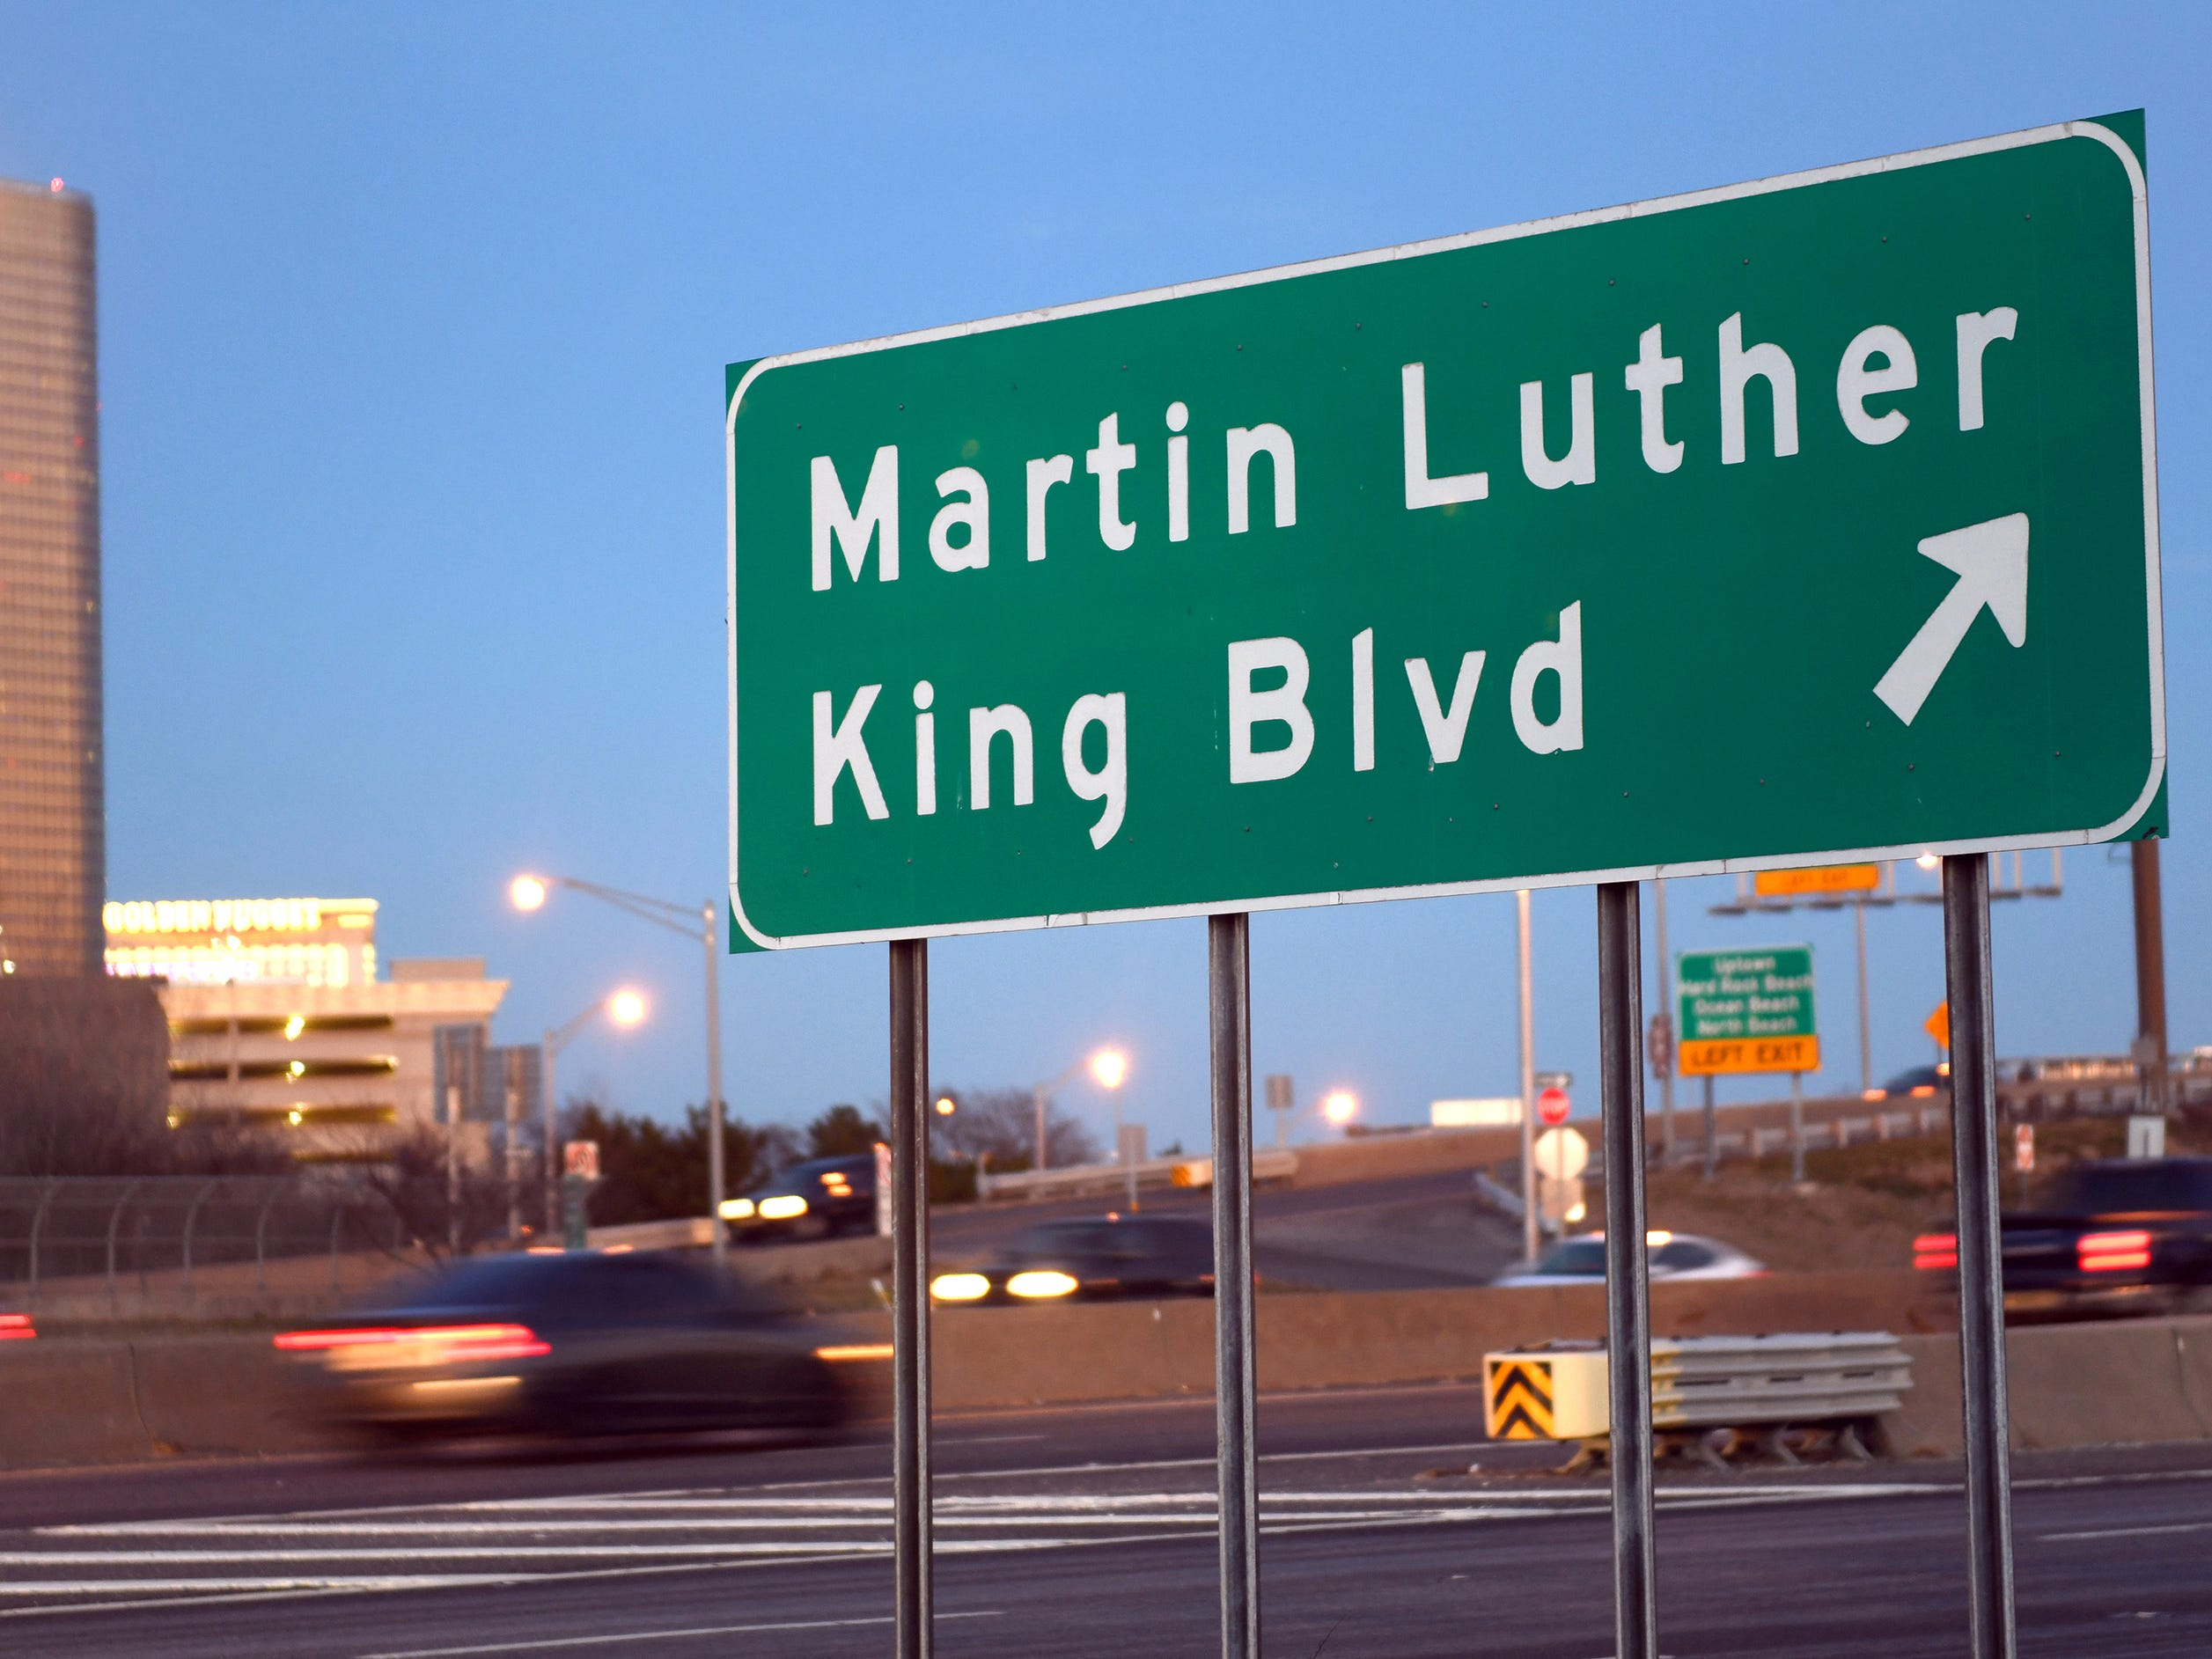 PHOTOS: Martin Luther King Jr. Boulevard in Atlantic City